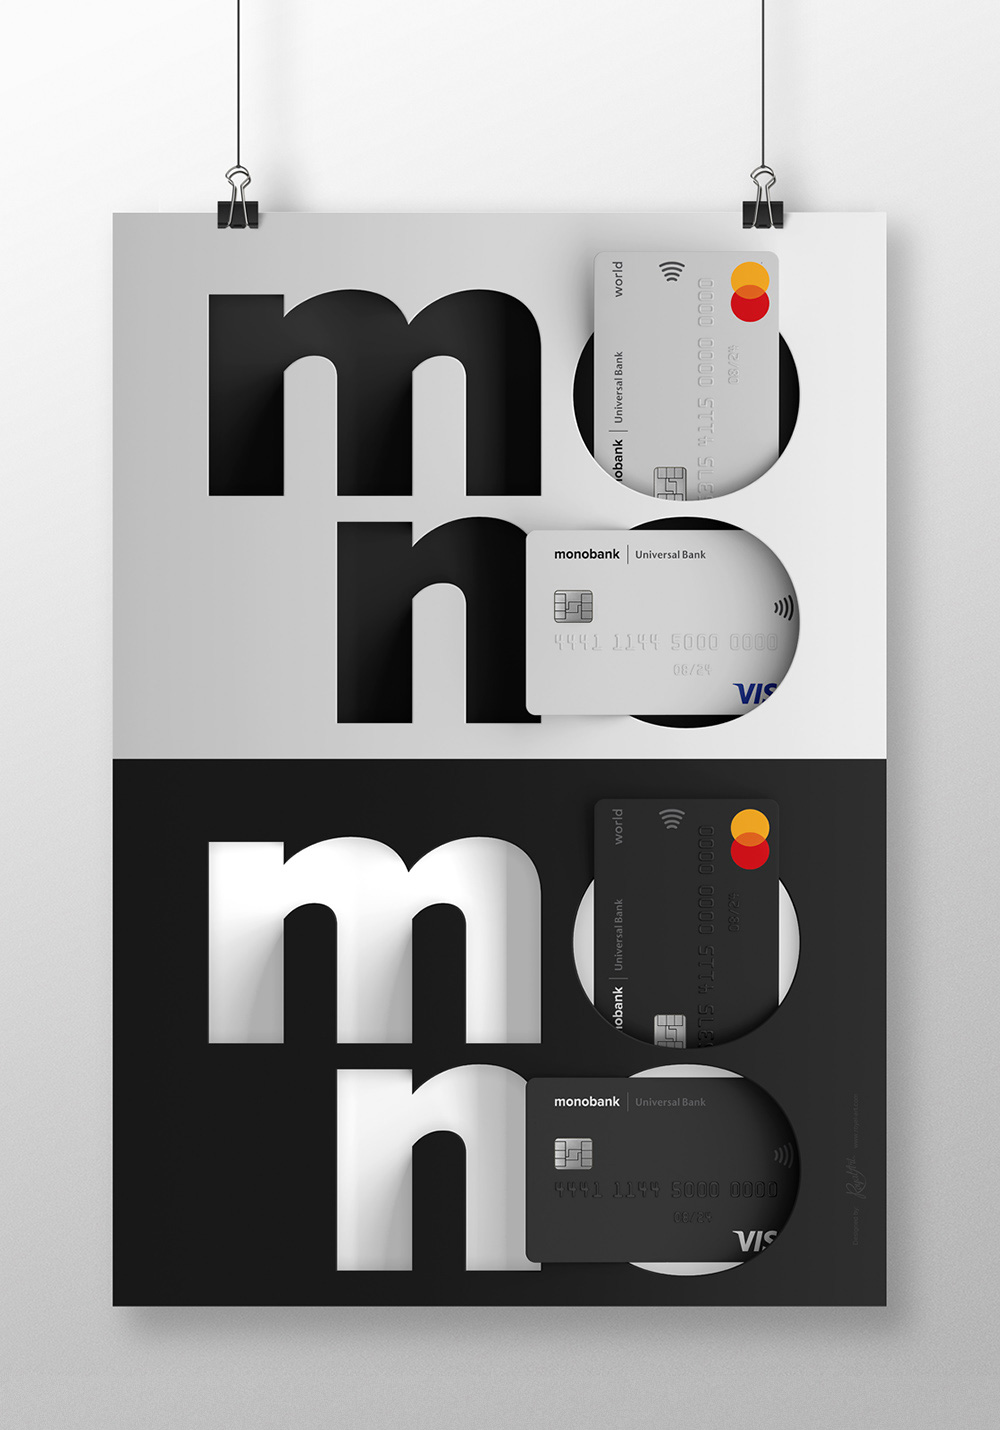 mono cards. The VISA and Mastercard white and black monobank cards. The poster design for the bank's office.